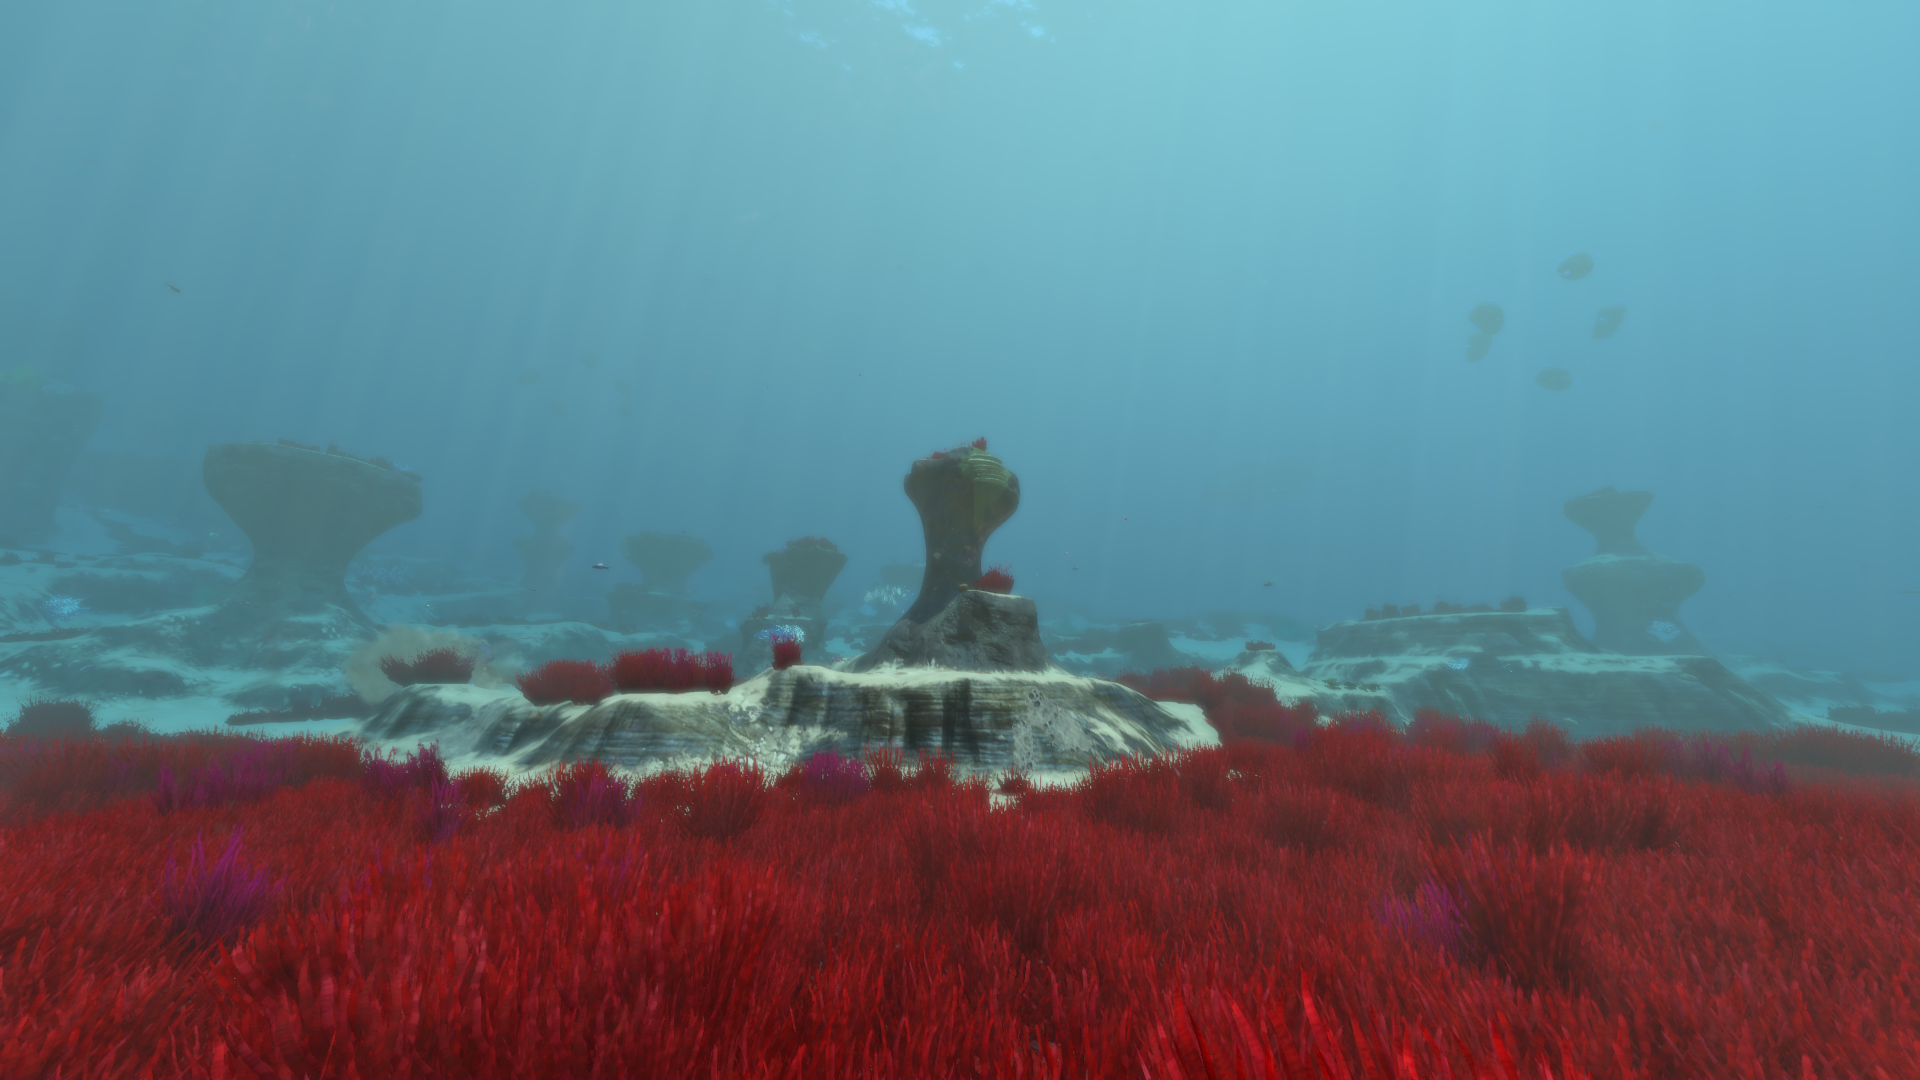 Grassy Plateaus Subnautica Wiki Fandom Search for wrecks and boxes. grassy plateaus subnautica wiki fandom